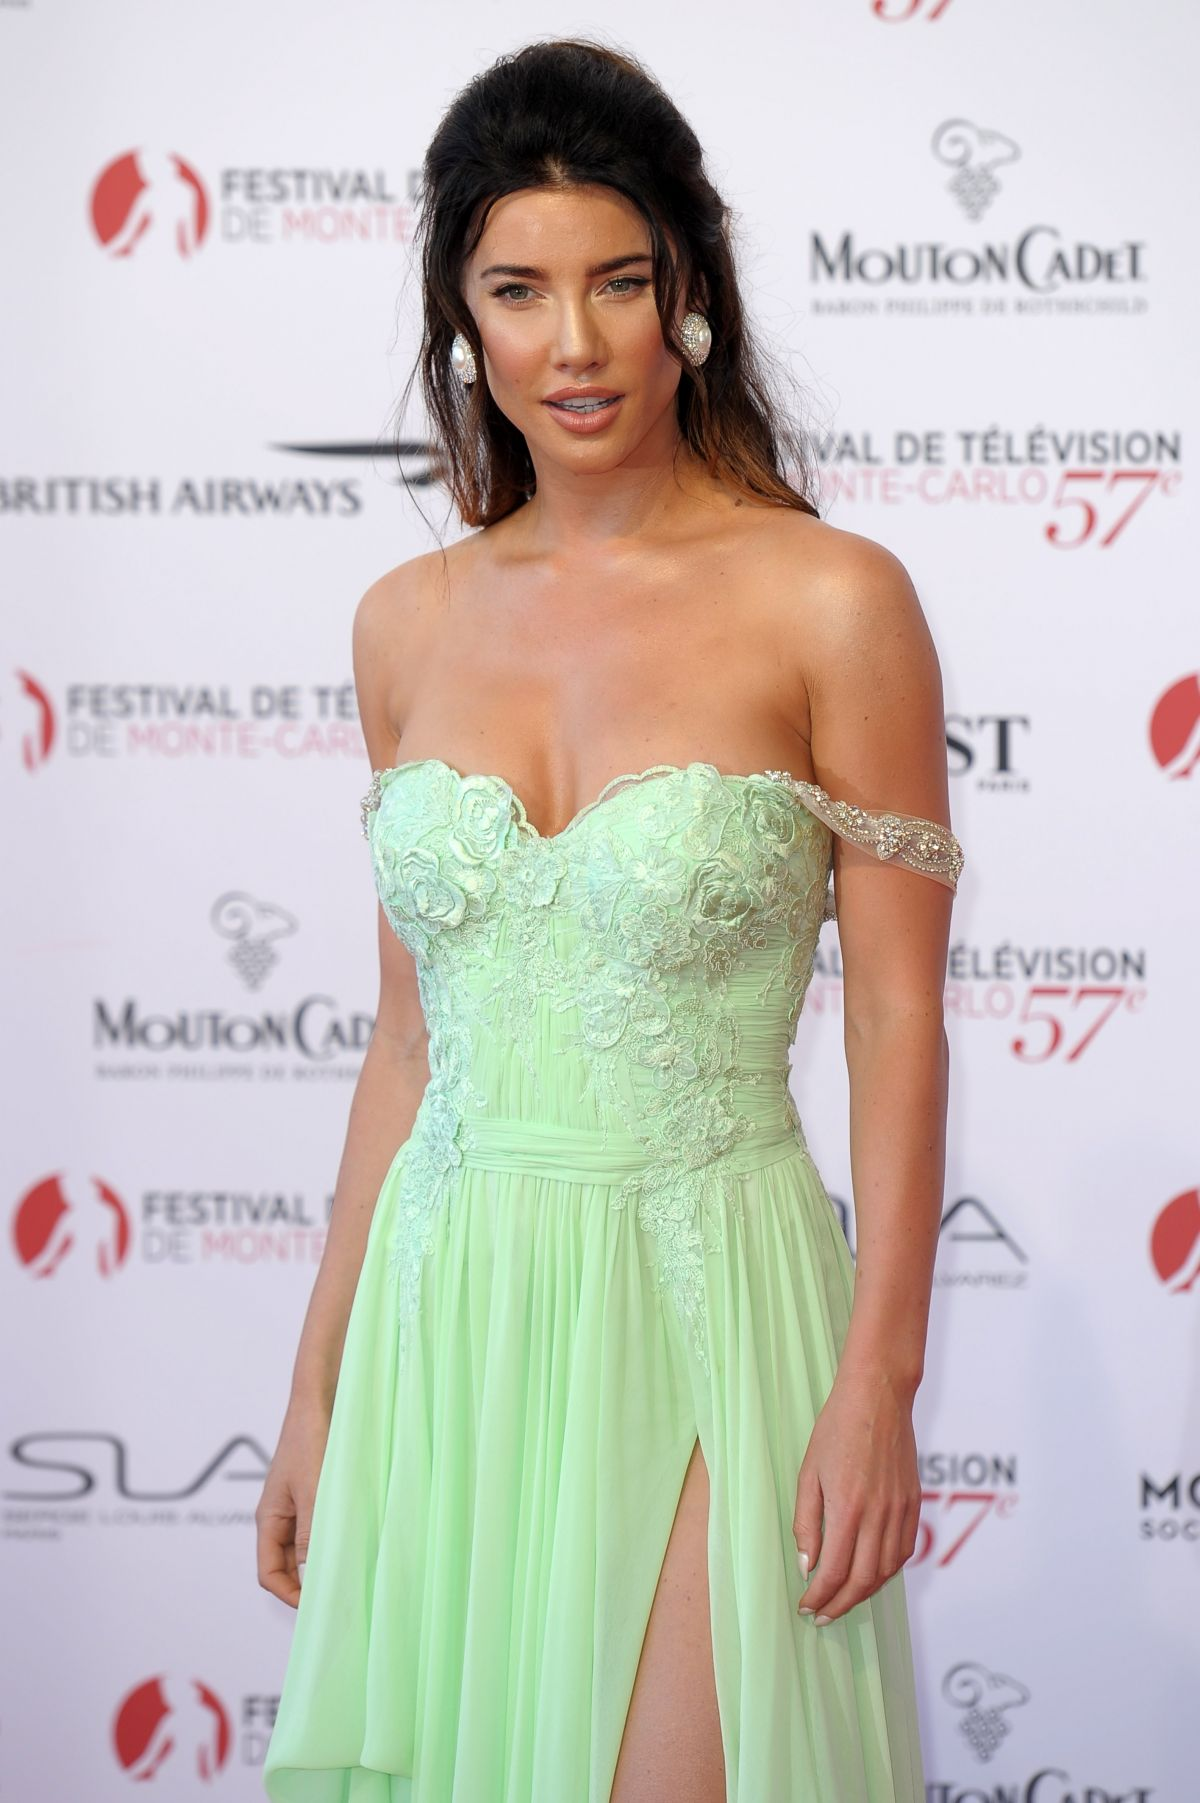 JACQUELINE MCINNES WOOD at 57th Monte-Carlo Television Festival Opening 06/16/2017